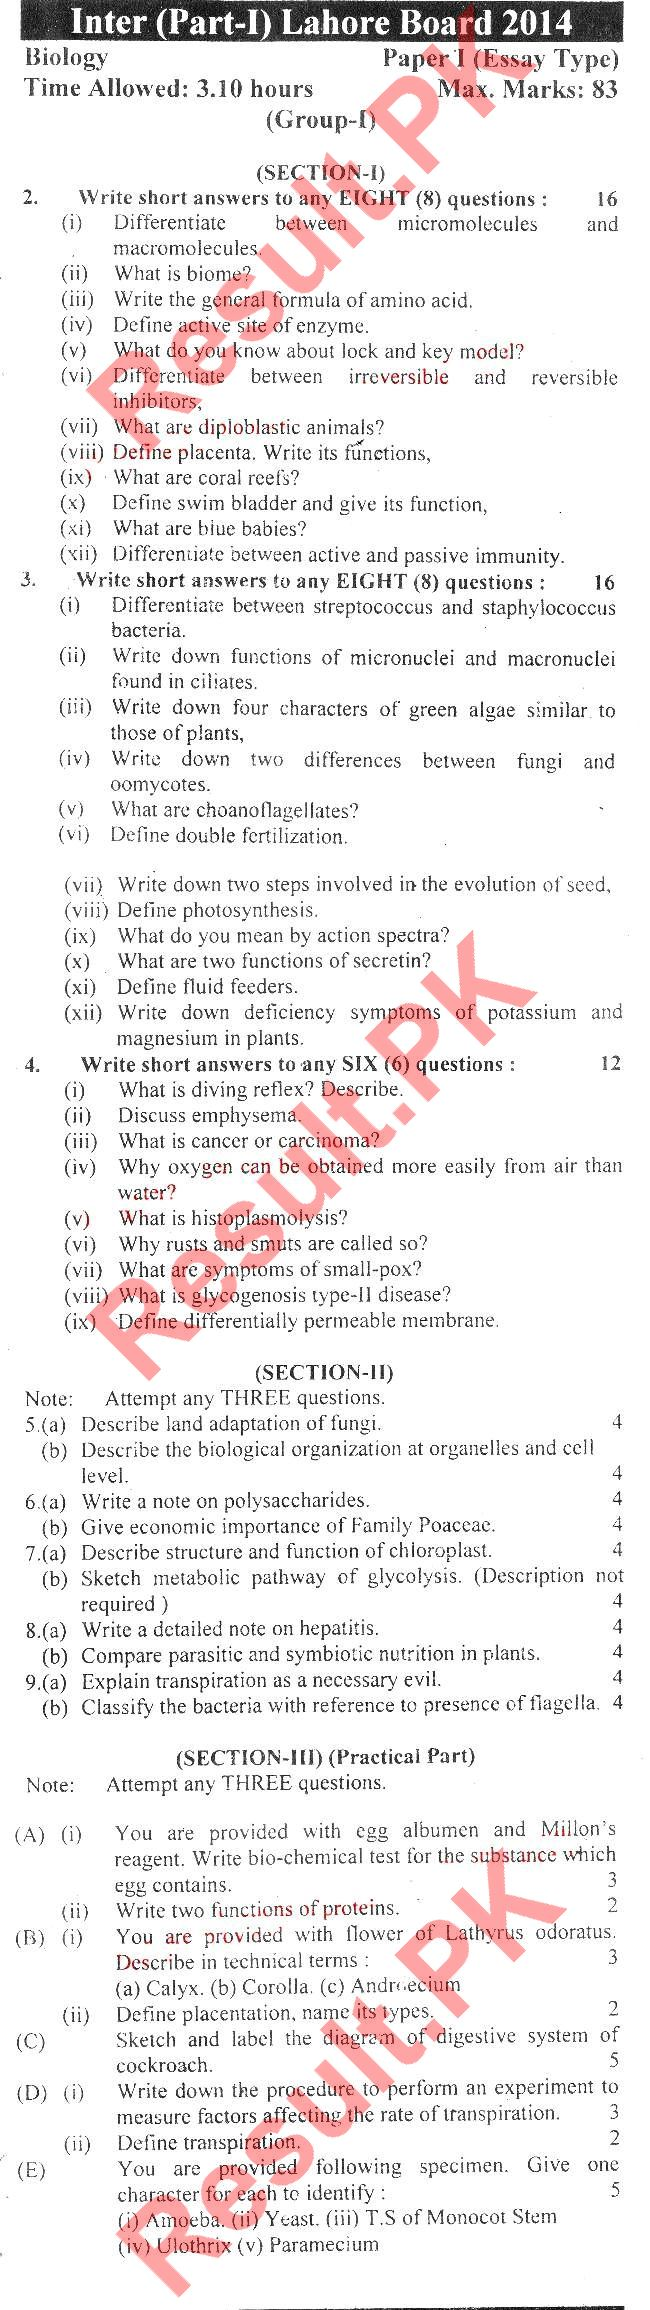 biology intermediate 2 past papers